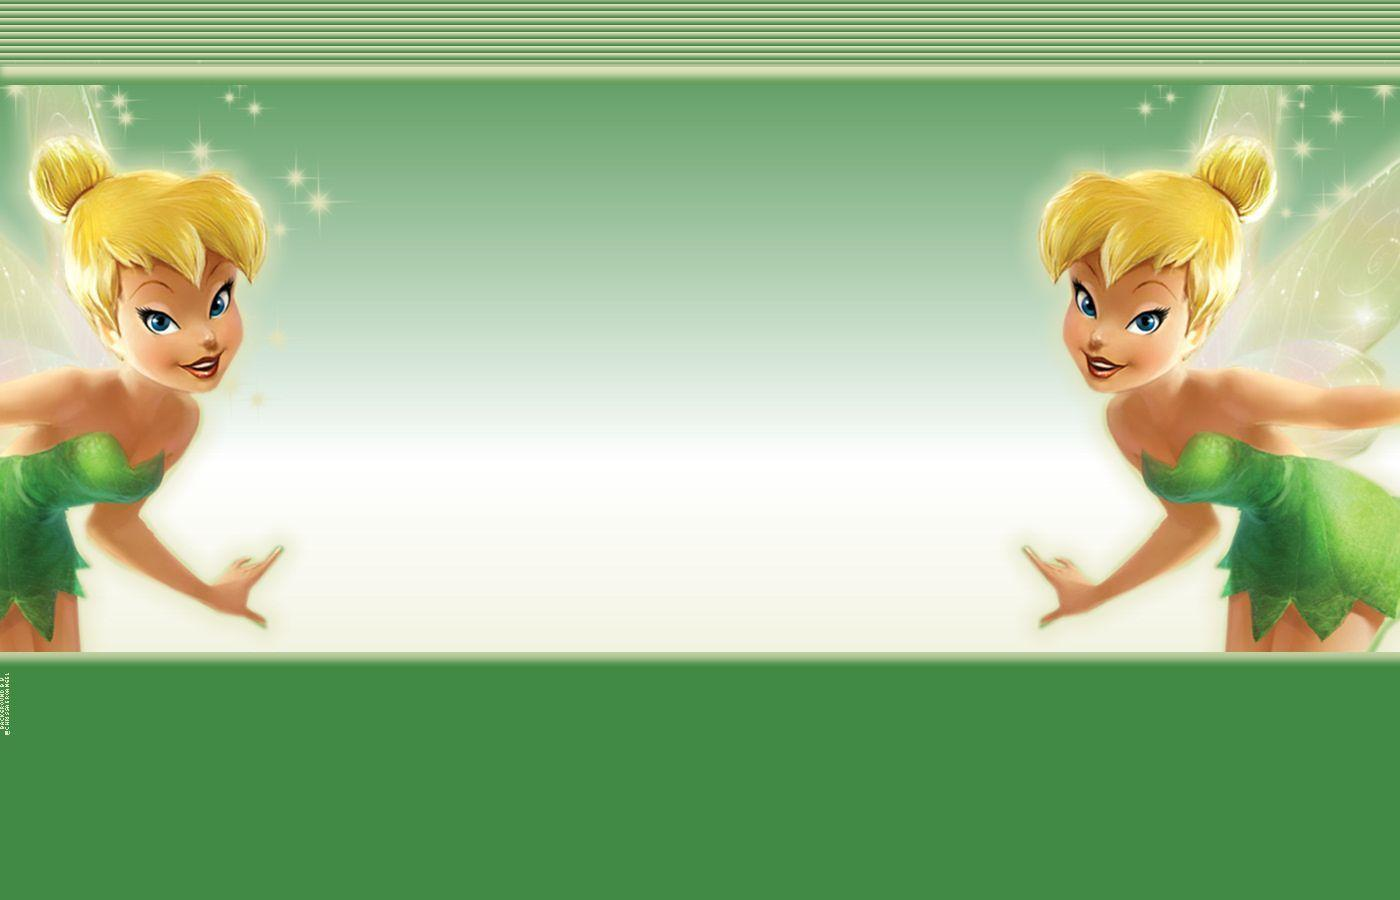 Free tinkerbell wallpapers wallpaper cave download free tinkerbell wallpaper 1400x900 full hd wallpapers voltagebd Choice Image